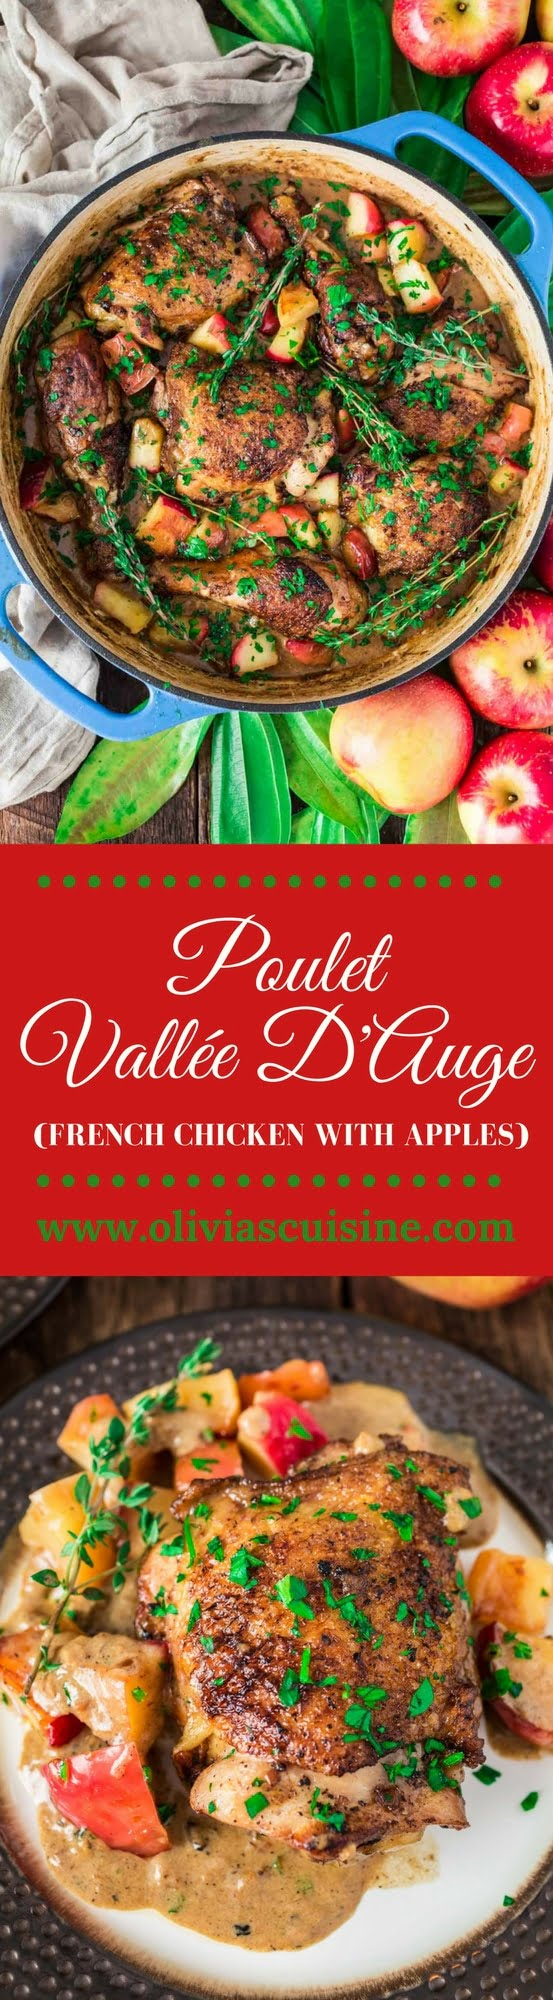 poulet-vallee-dauge-pinterest